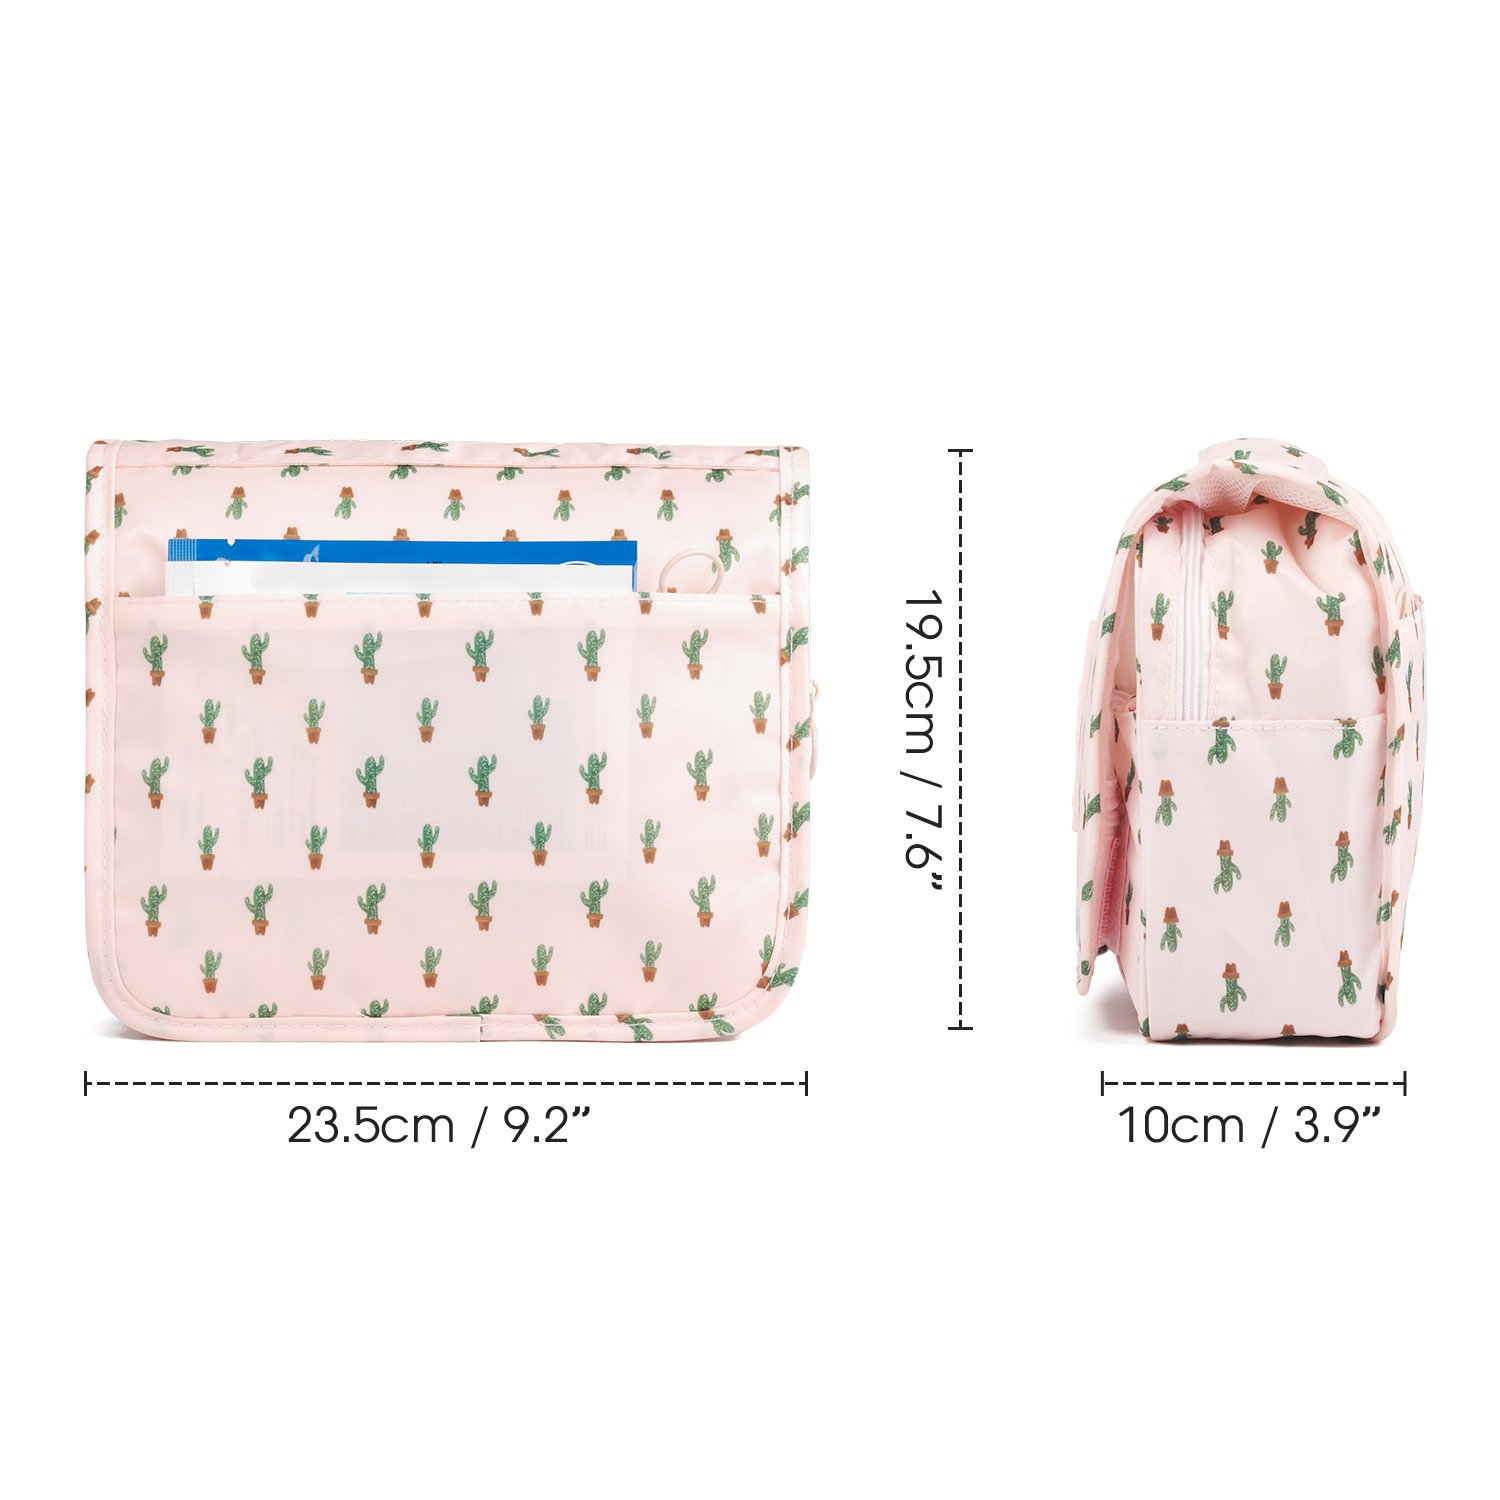 8faf5e5d014e Hanging Travel Toiletry Bag Cosmetic Make up Organizer for Women and Girls  Waterproof (Cactus)